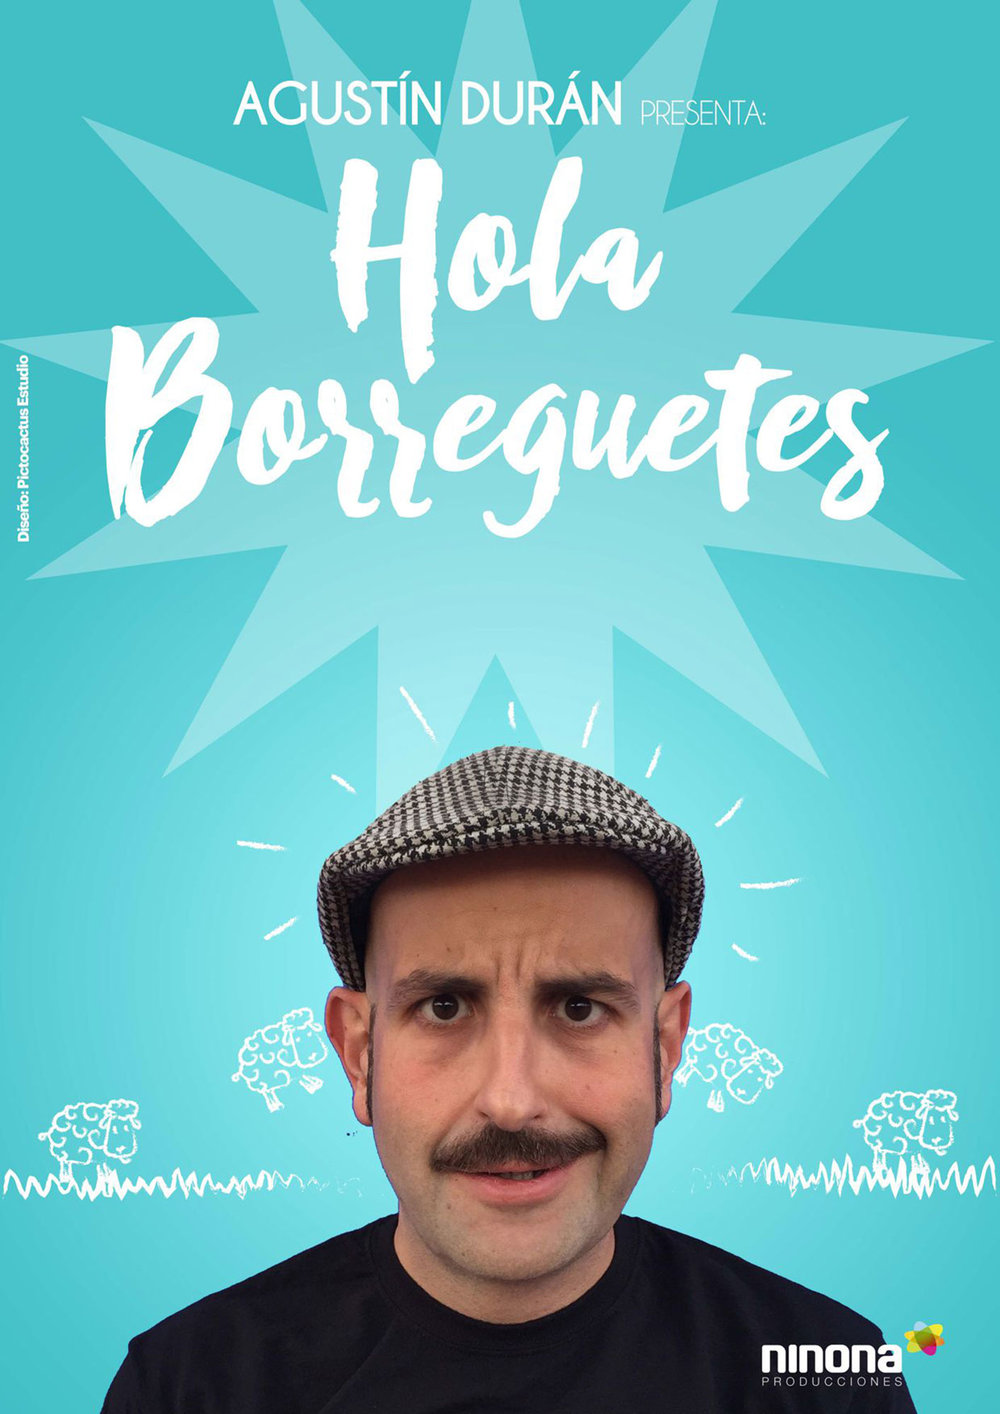 hola-borreguetes-teatro-carrion-valladolid.jpg